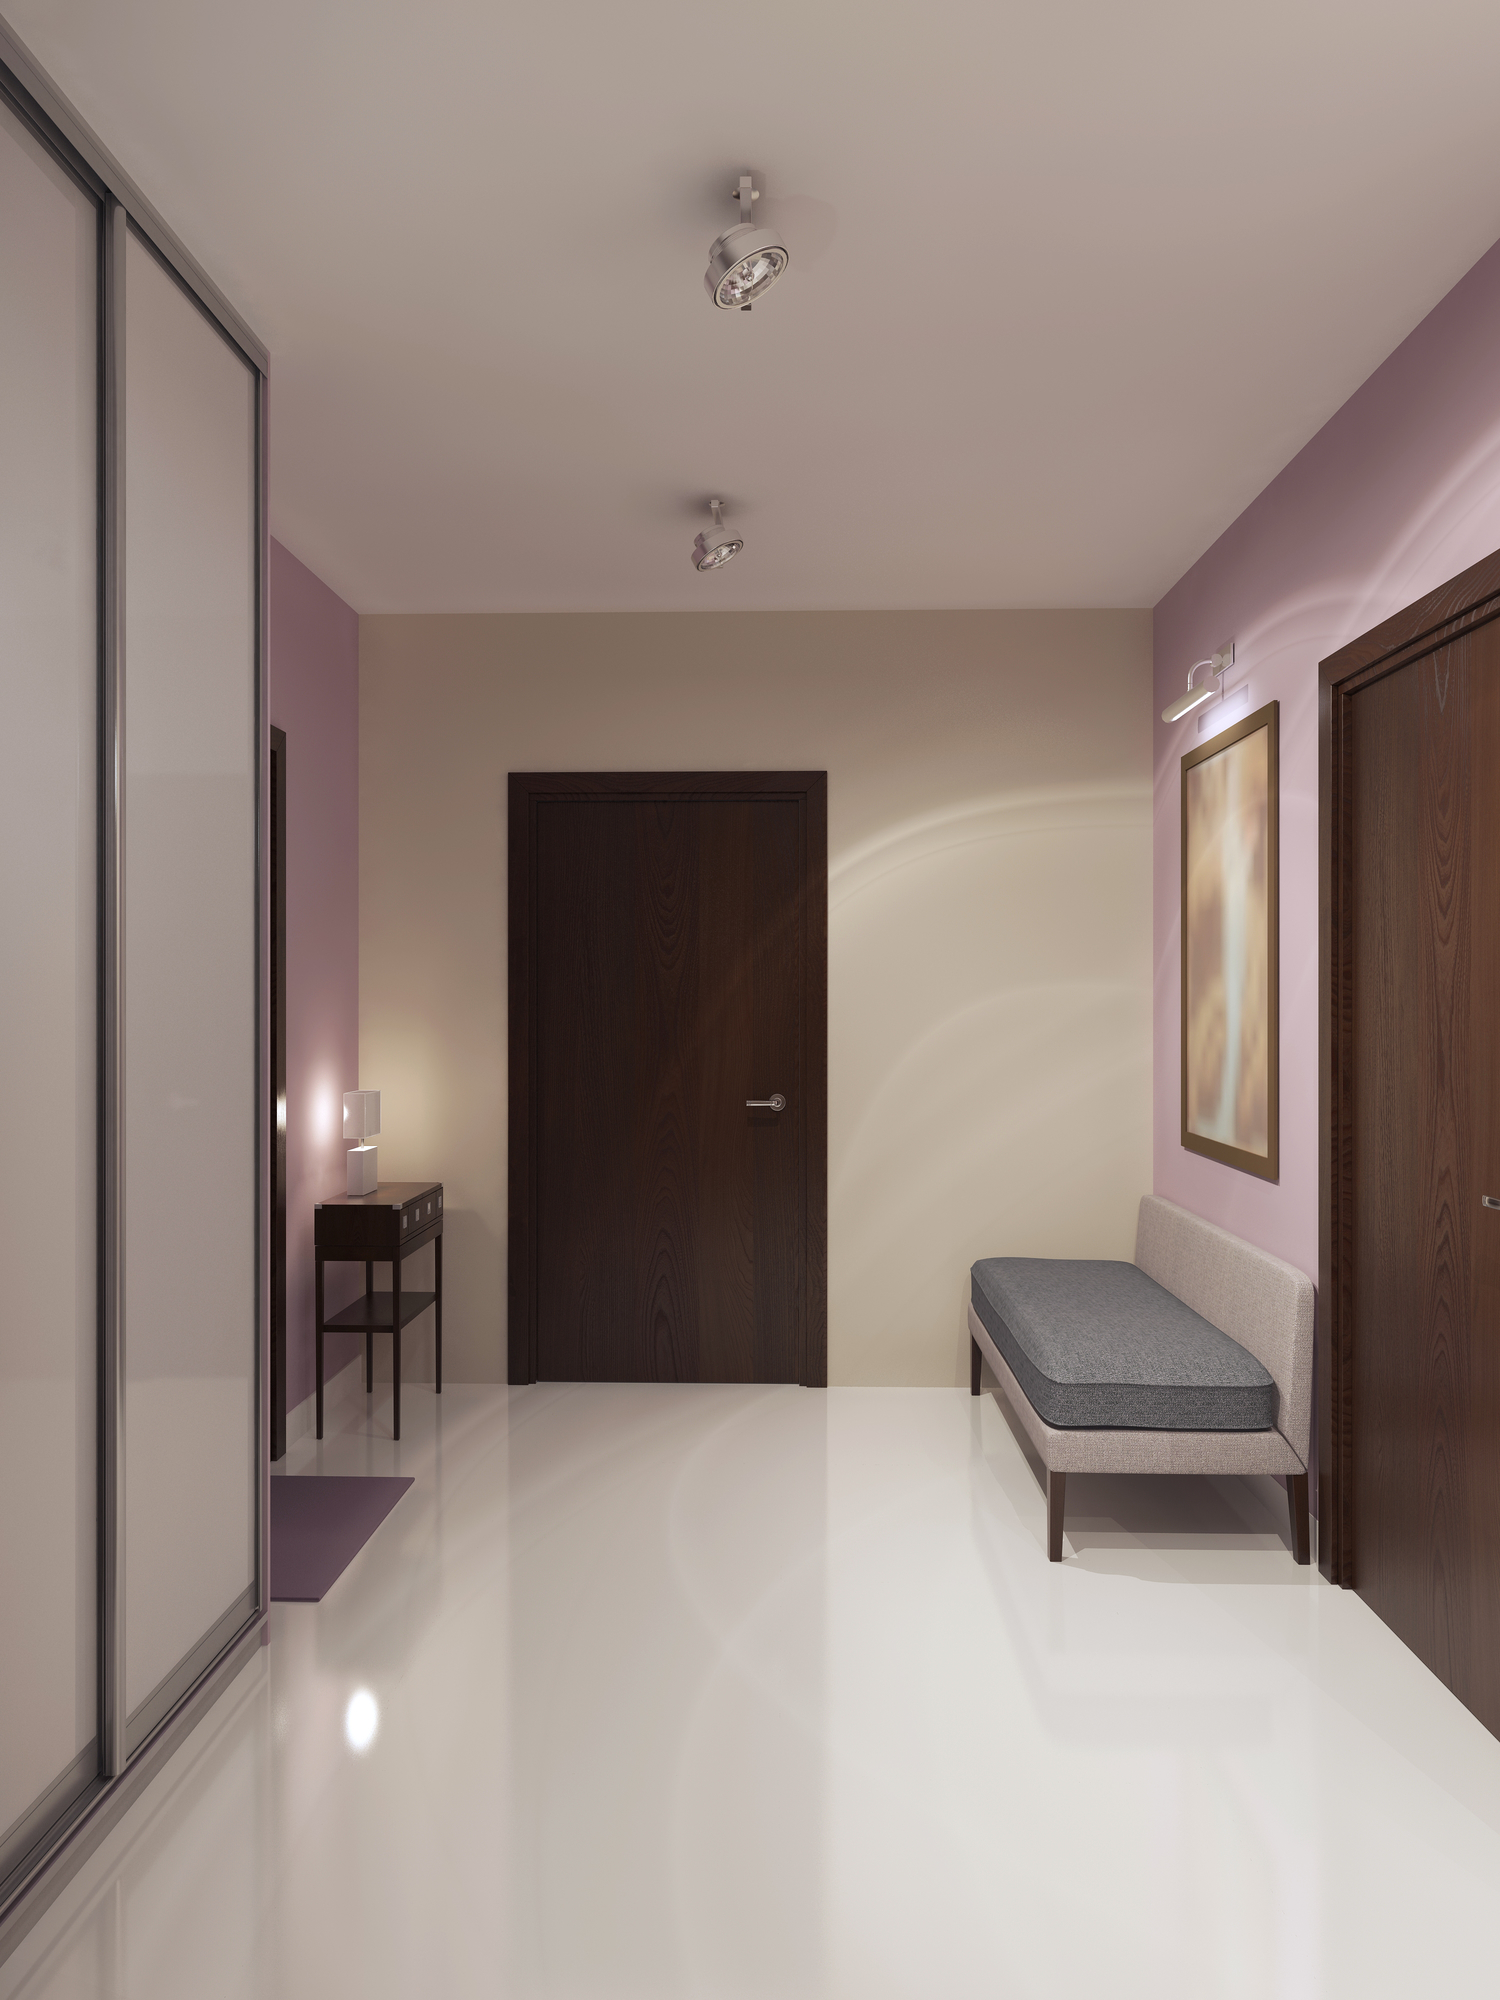 3 reasons to consider concrete polishing for your floors chynna concrete manhattan nearsay - Why you should consider concrete staining for your home ...